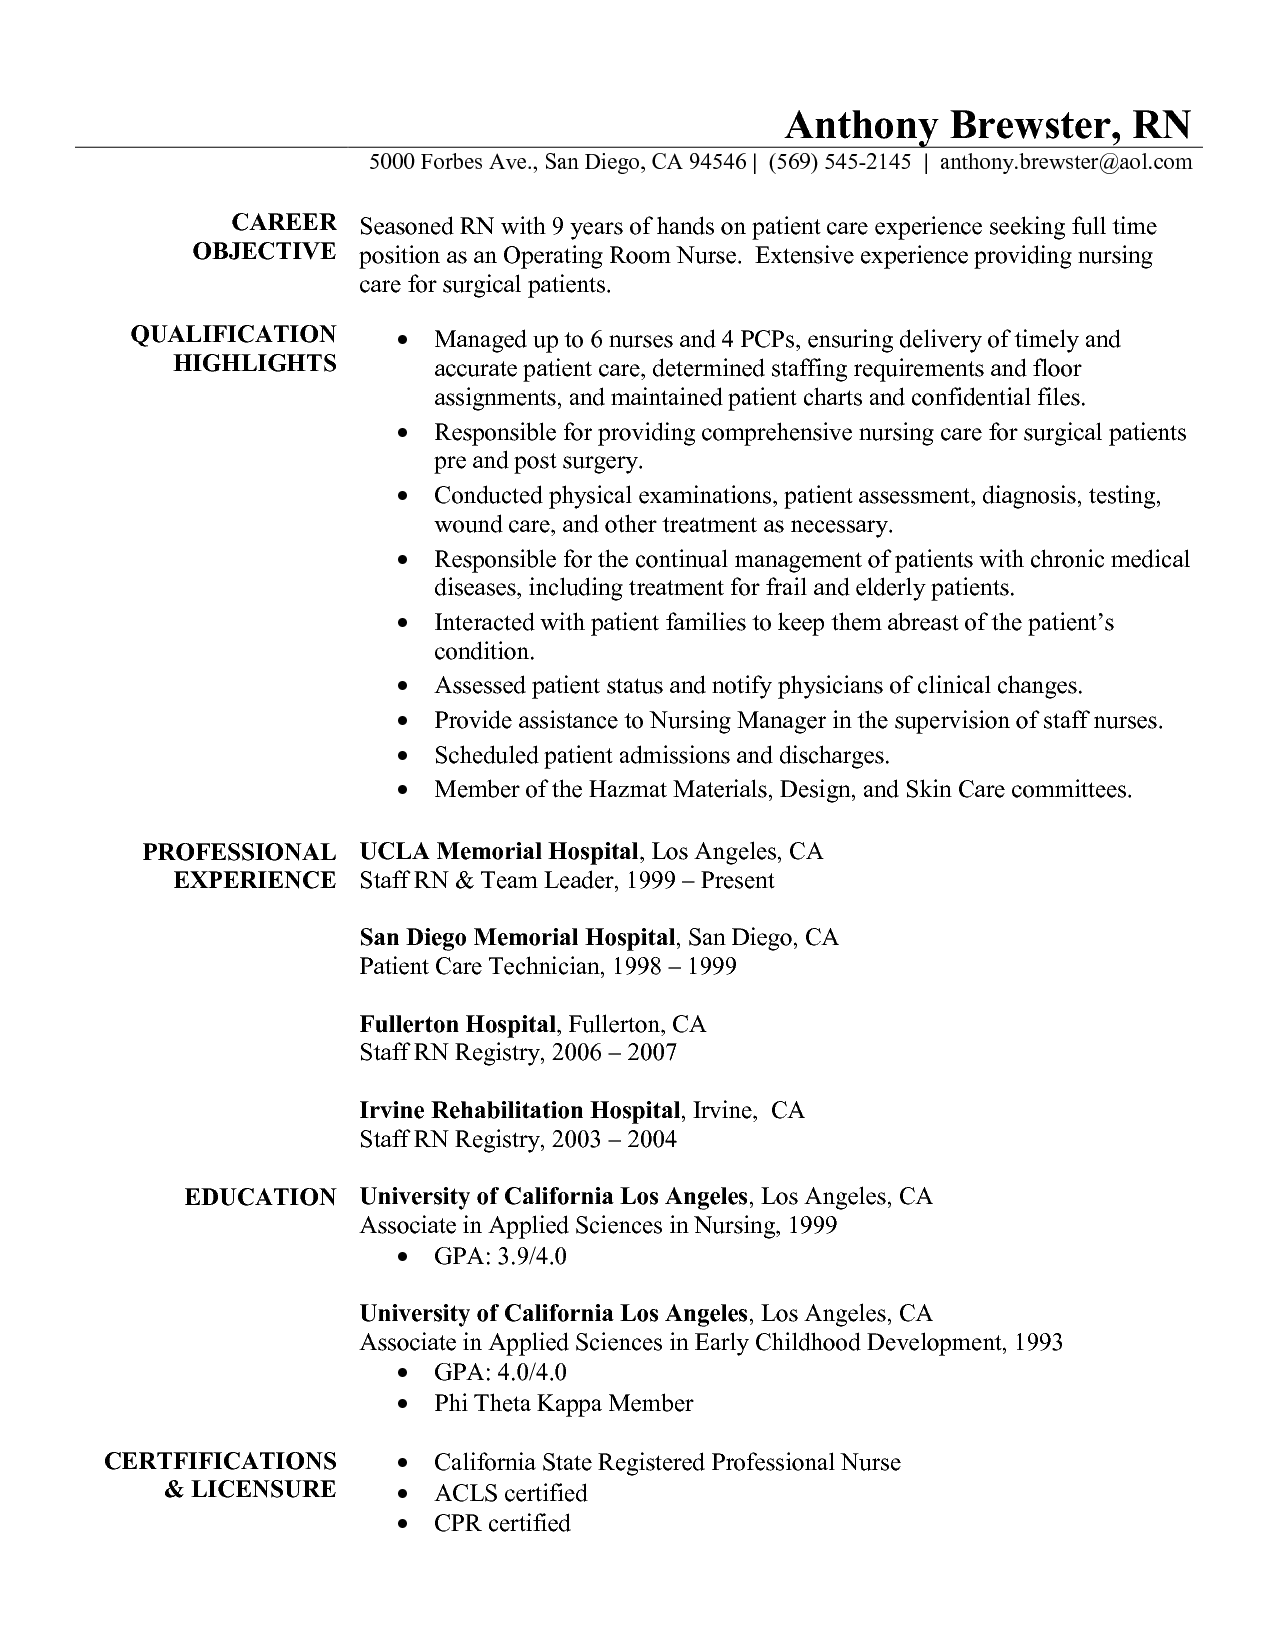 Resume Format Template Curriculum Vitae Template Nurse  Google Search  Wade Resume